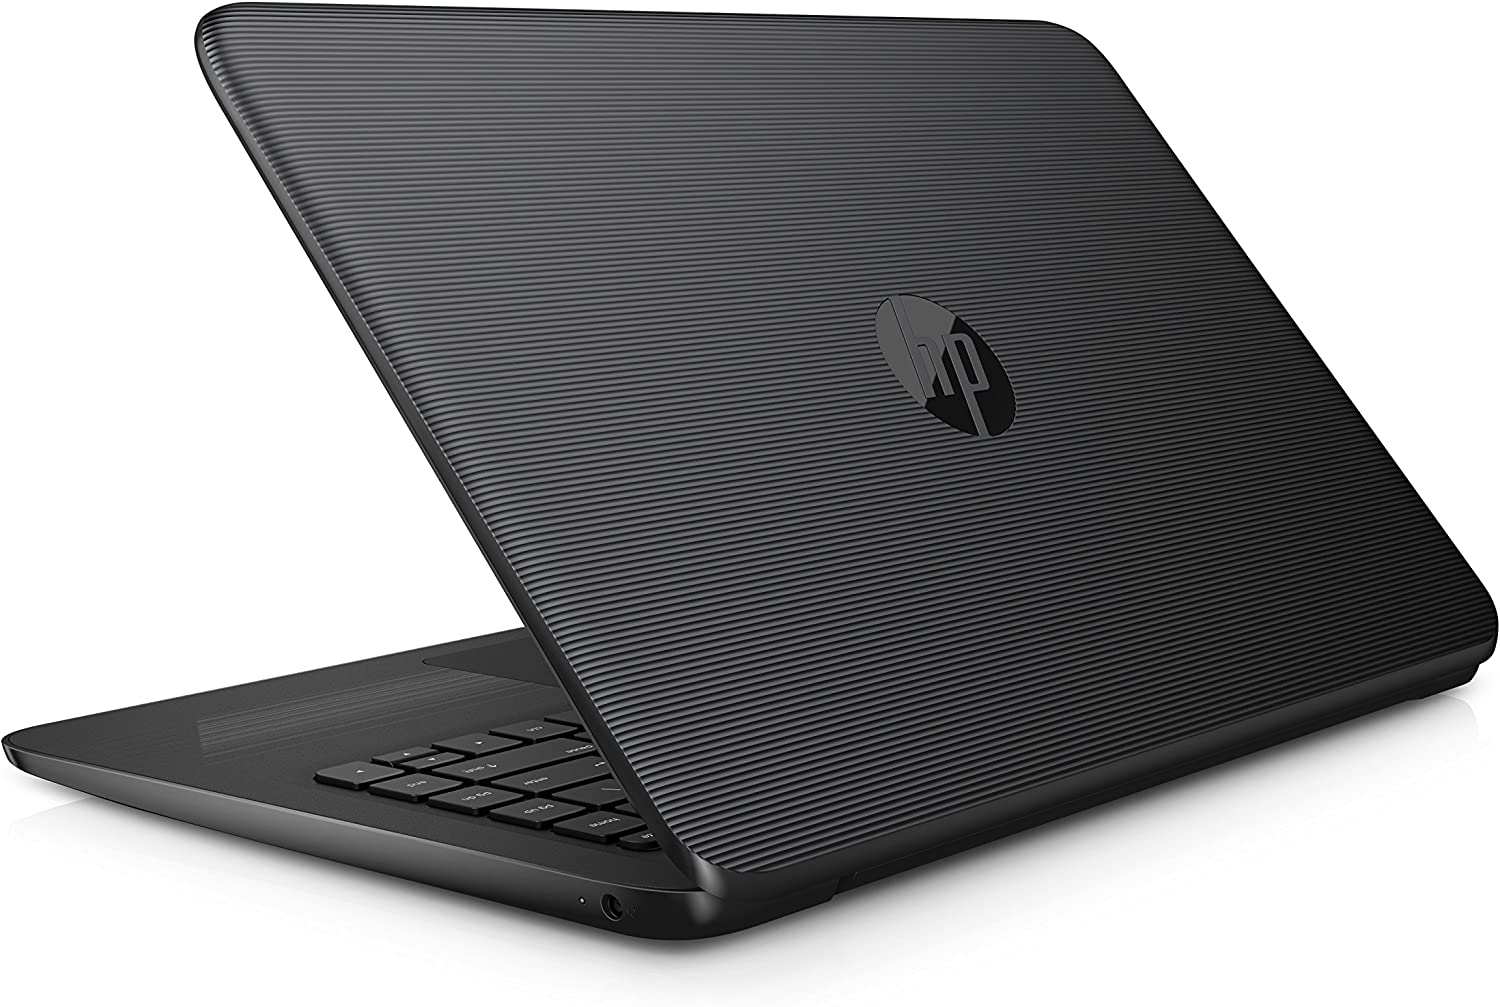 """HP Stream with an Ultra-Portable Design Laptop, 14"""" Screen, Intel Celeron N3060 Processor, 4GB RAM, 32GB eMMC Storage, Windows 10 Home, Office 365 Personal 1-Year Included, Jet Black"""